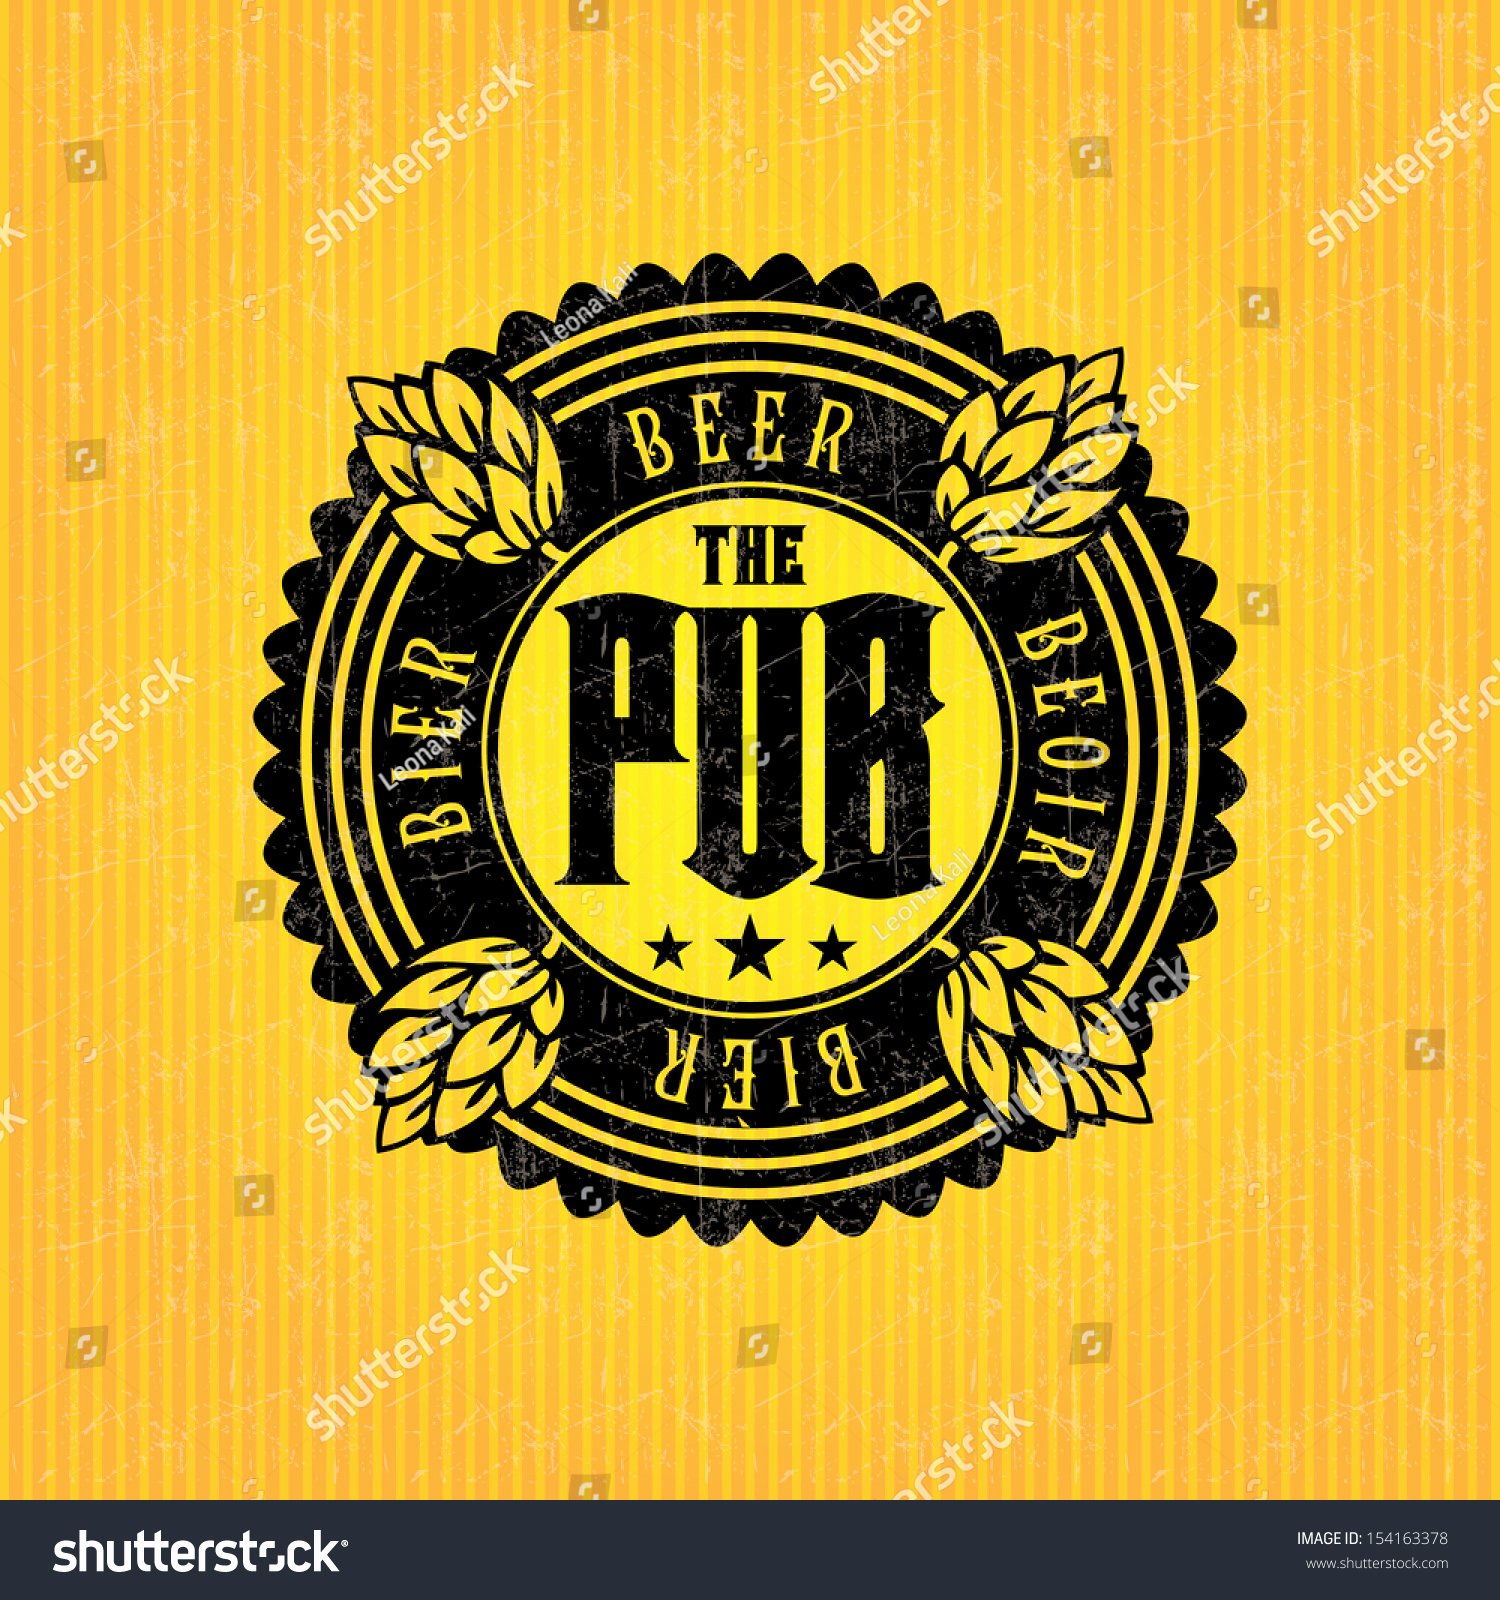 Beer Can Design Template Lovely Beer Label Design Template Stock Vector